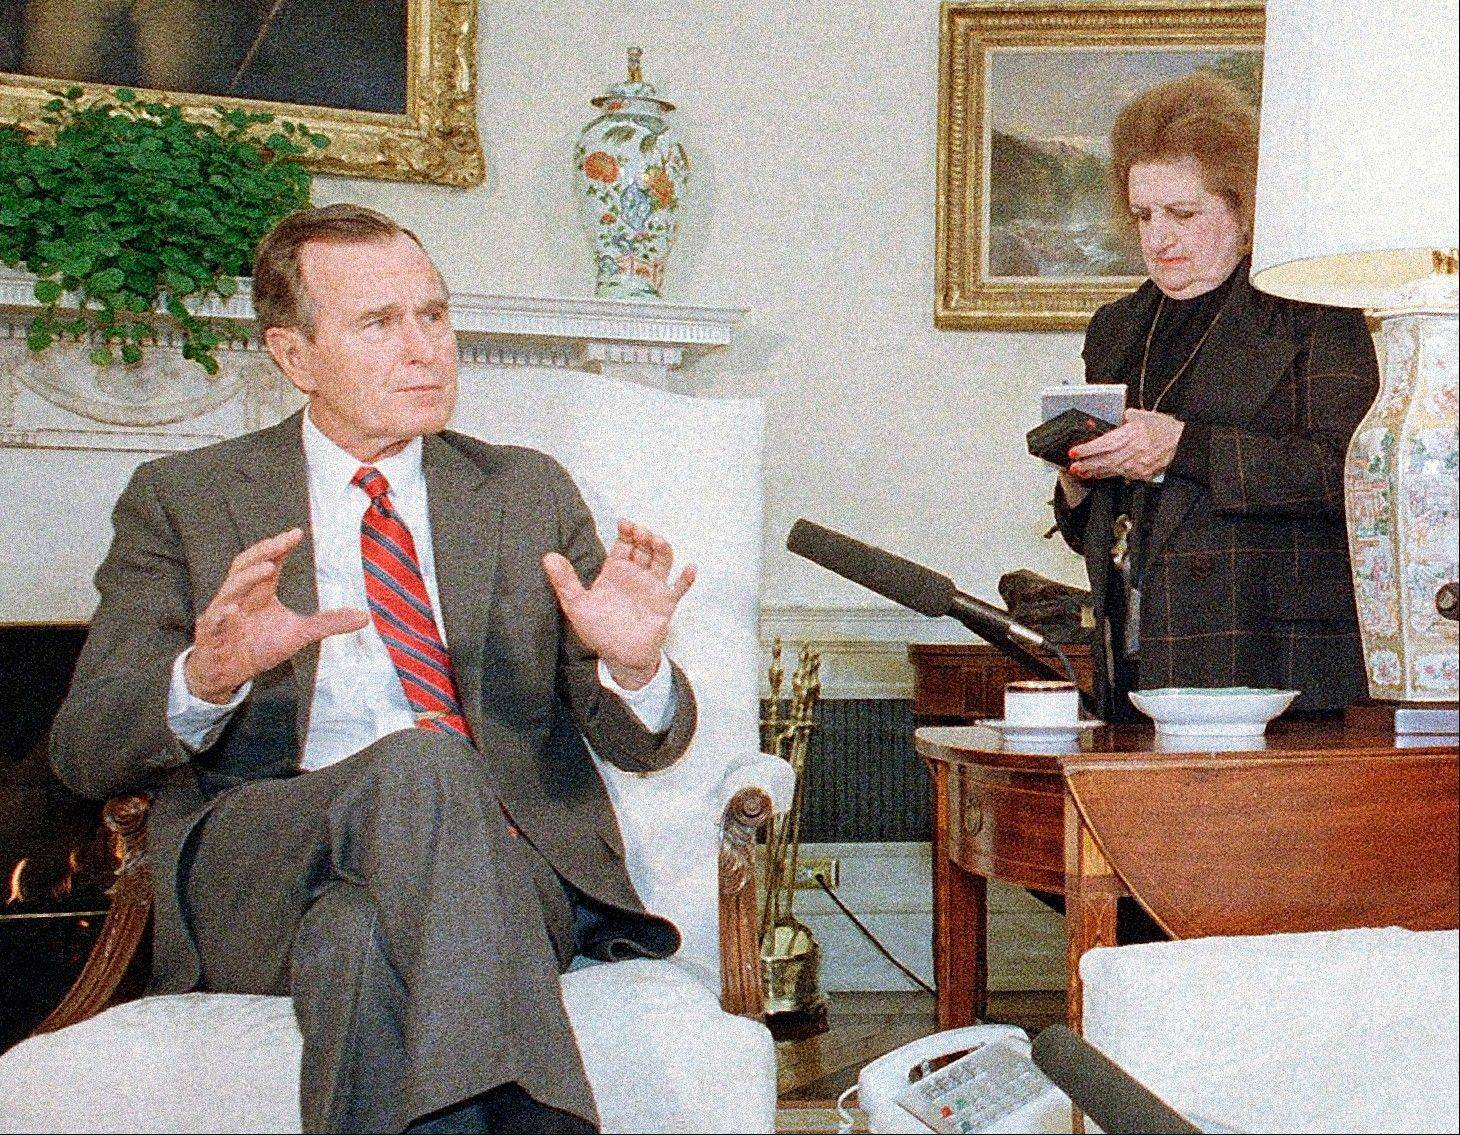 Associated Press In this Jan. 21, 1989, file photo, President George H. Bush speaks with reporters, including Helen Thomas, right, in Washington. Thomas, a pioneer for women in journalism and an irrepressible White House correspondent, has died Saturday, July 20. She was 92.